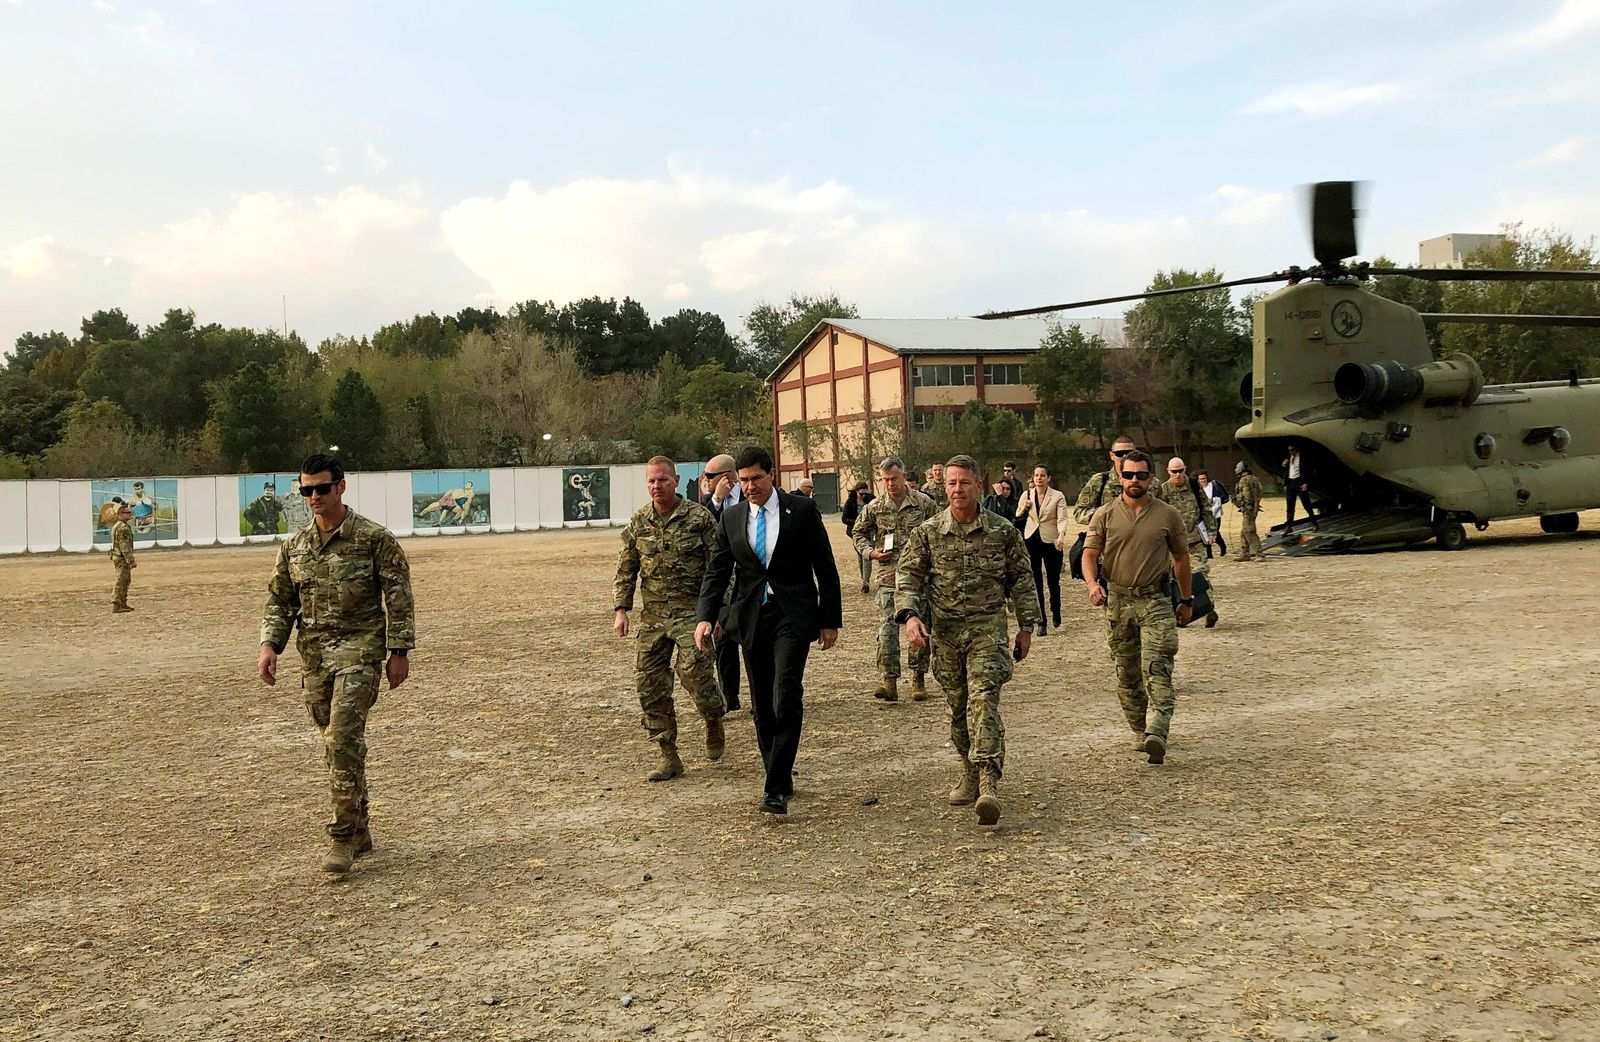 U.S. Defense Secretary Mark Esper, center, walks Gen. Scott Miller, right, chief of the U.S.-led coalition in Afghanistan, at the U.S. military headquarters in Kabul, Afghanistan, Sunday, Oct. 20, 2019. (AP Photo/Lolita C. Balbor)